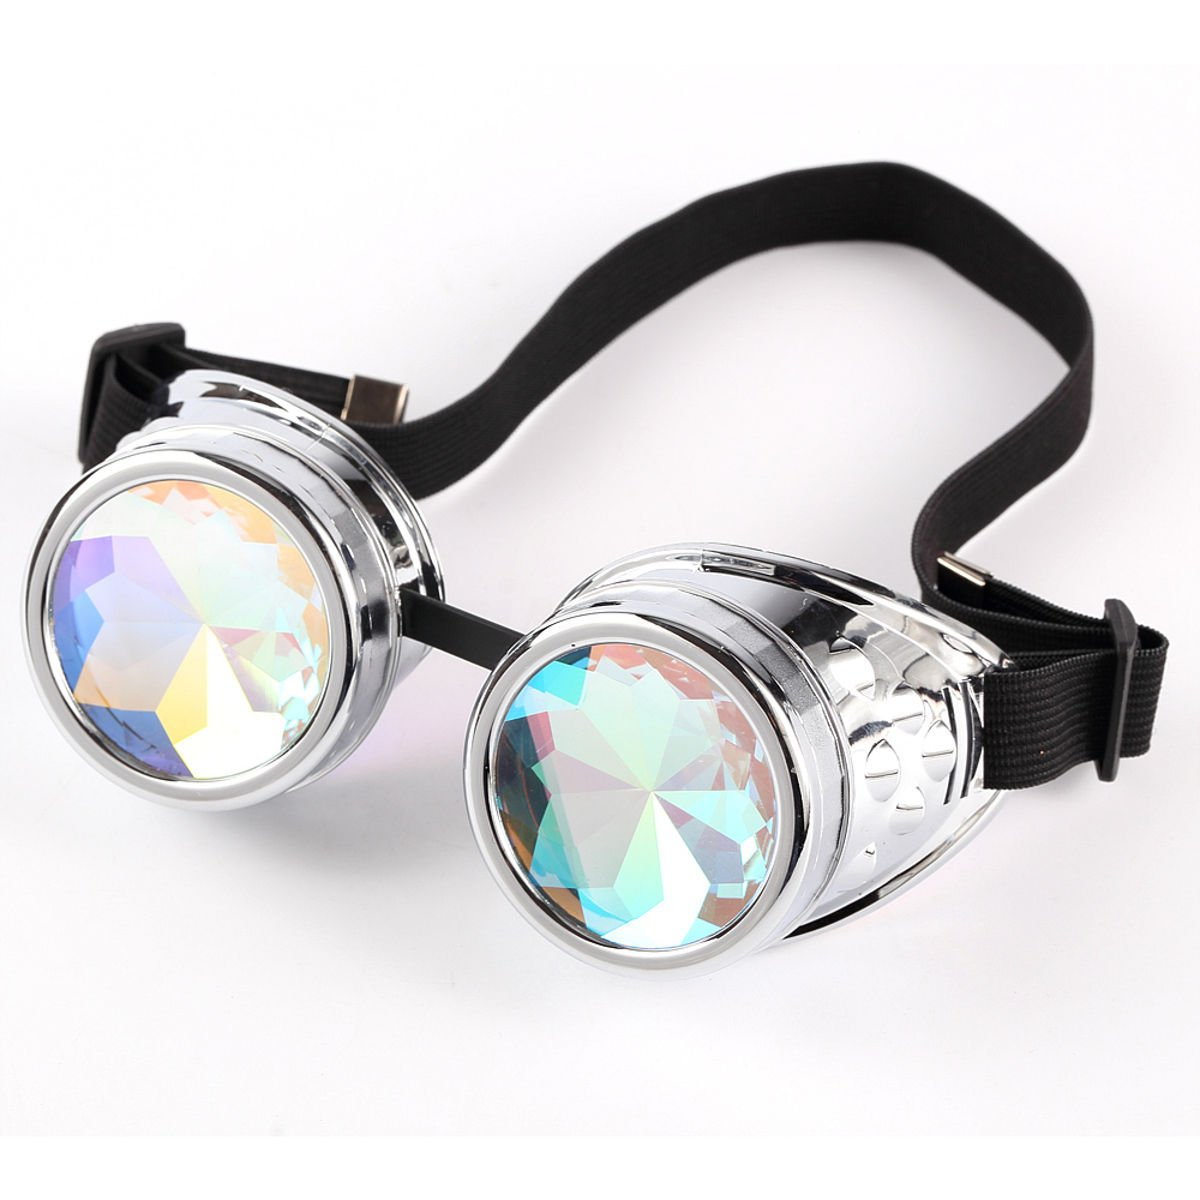 Wosonku Festivals Rave Kaleidoscope Rainbow Glasses Prism Diffraction Crystal Lense